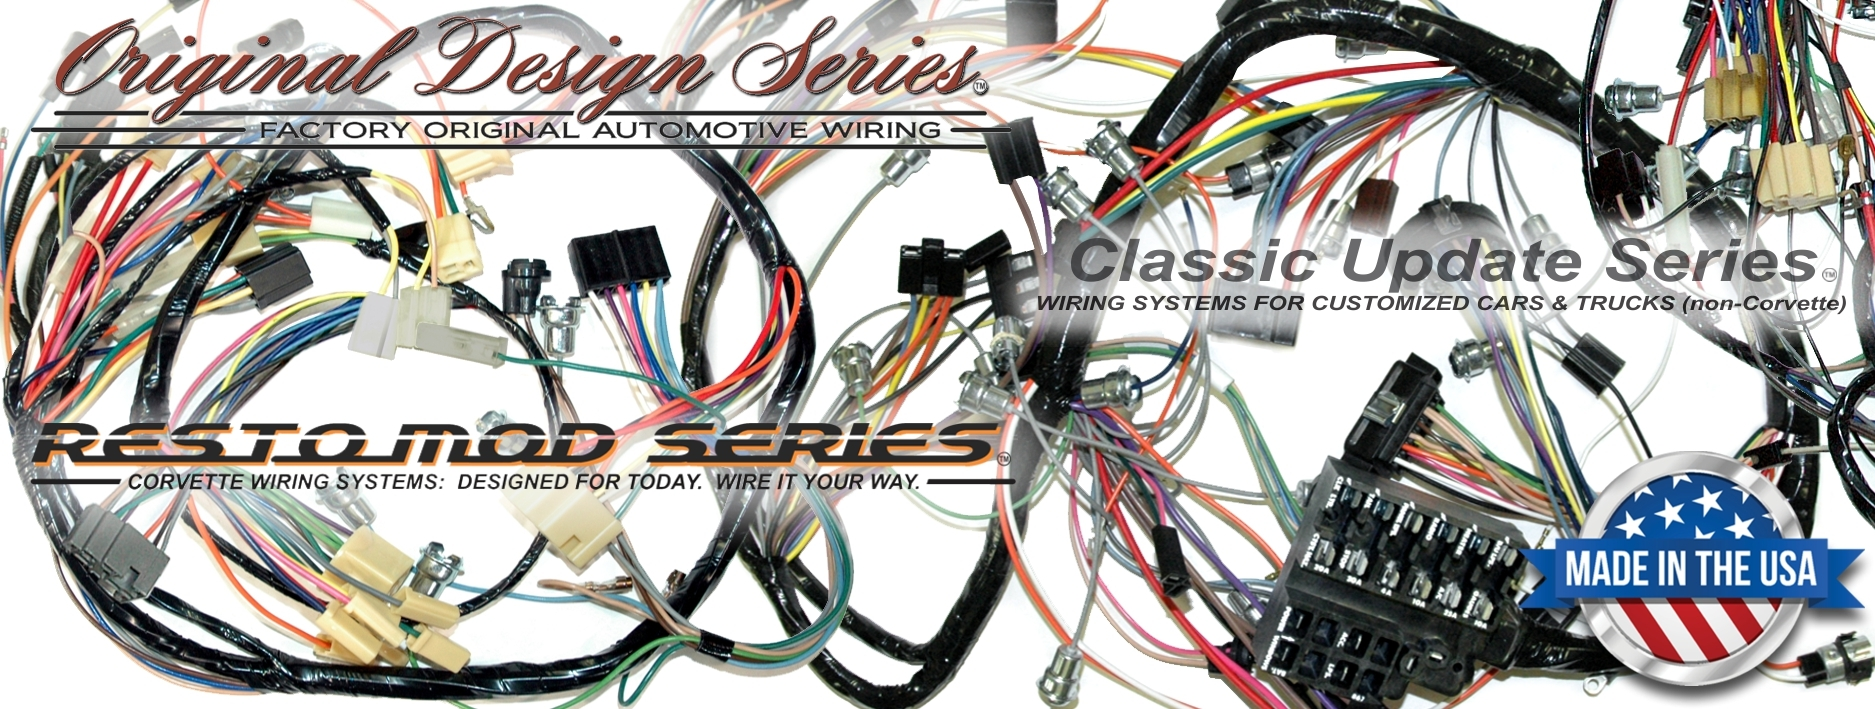 Exact Oem Reproduction Wiring Harnesses And Restomod Systems Jeep Grand Cherokee Radio Adaptor Harness Individual Complete